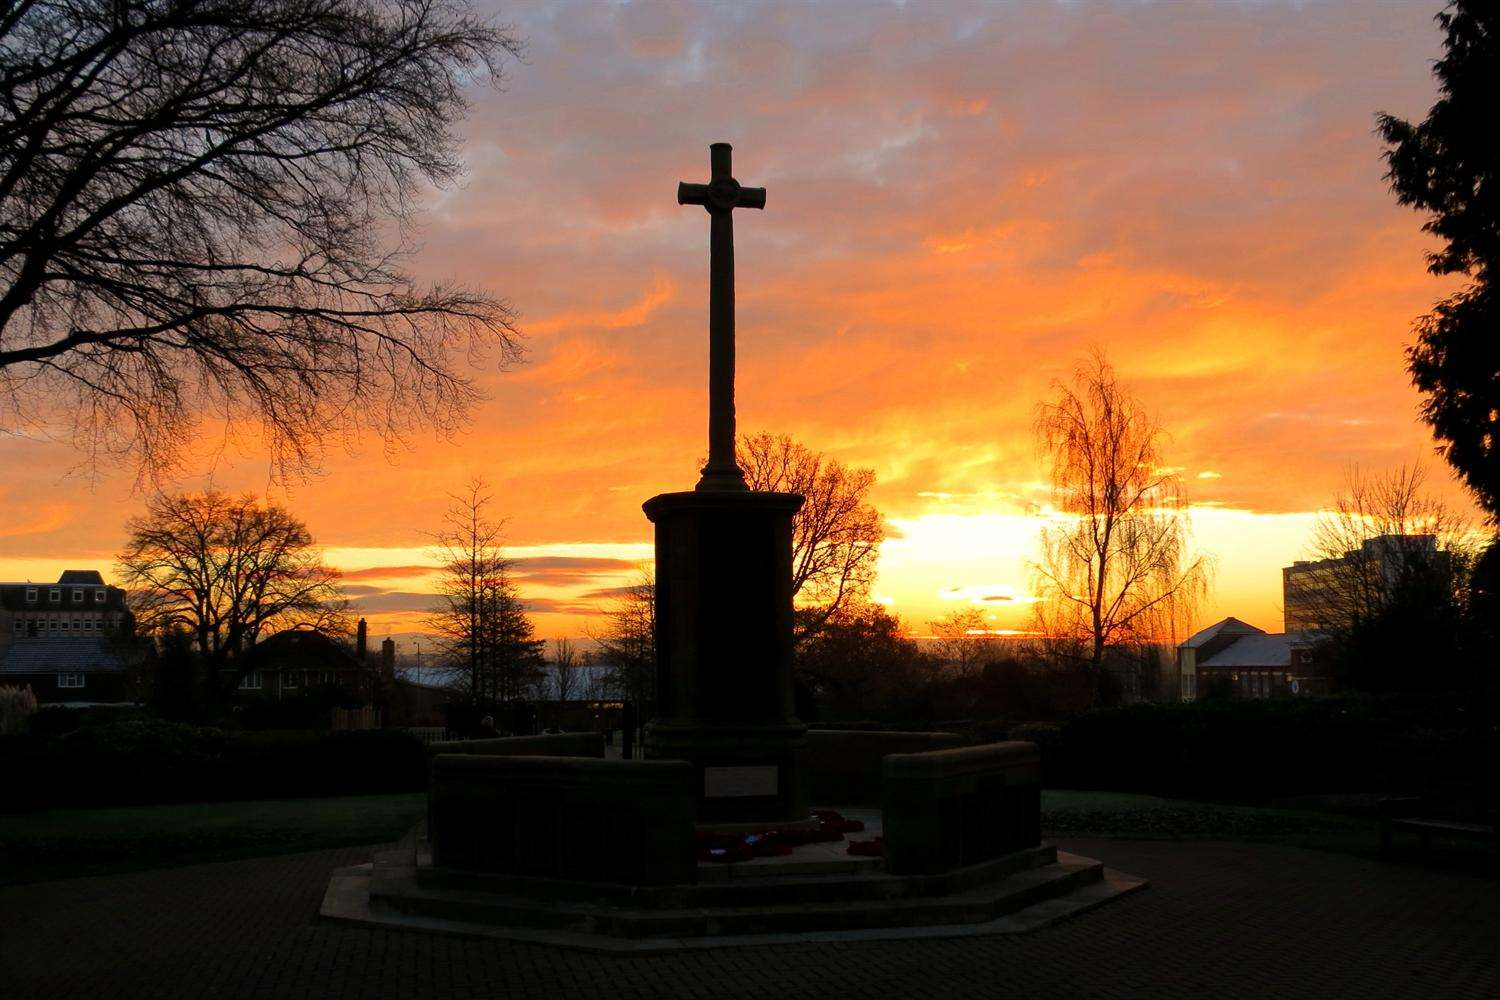 The war memorial in Ashford's Memorial Gardens - picture courtesy of Andy Clark